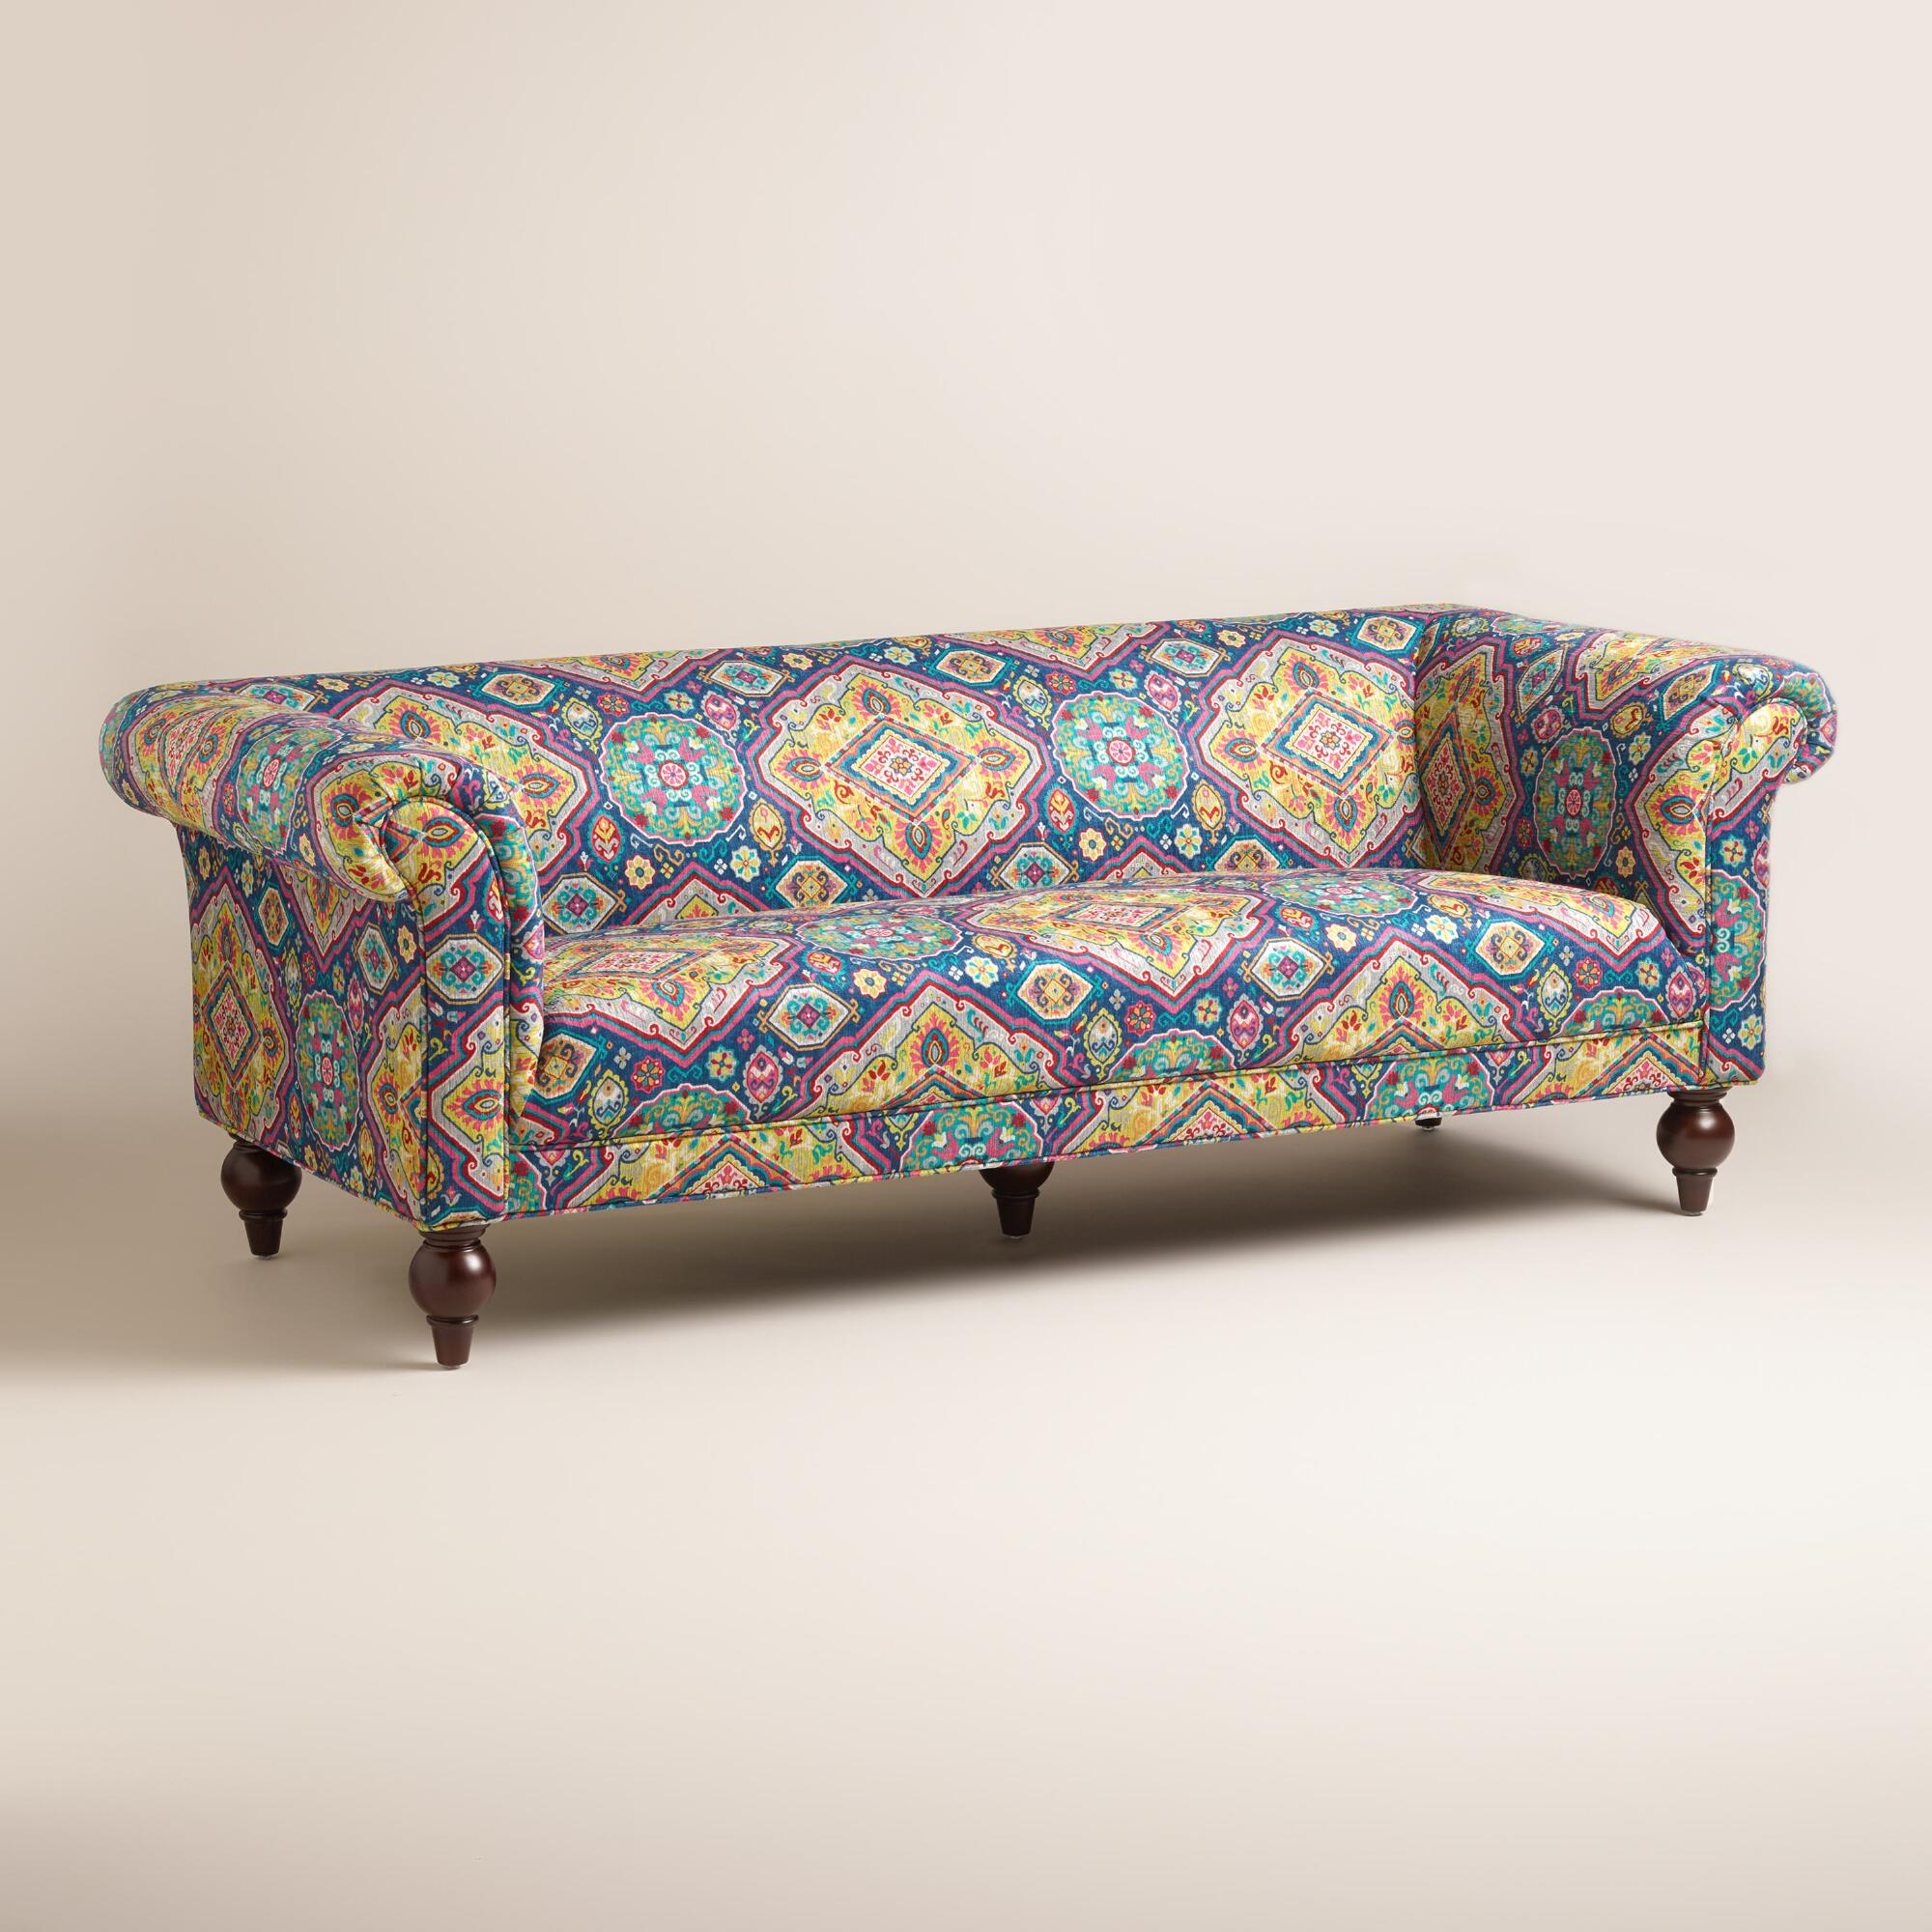 sitting pretty sofas sofa repair and upholstery prints 6 bed designs to complete